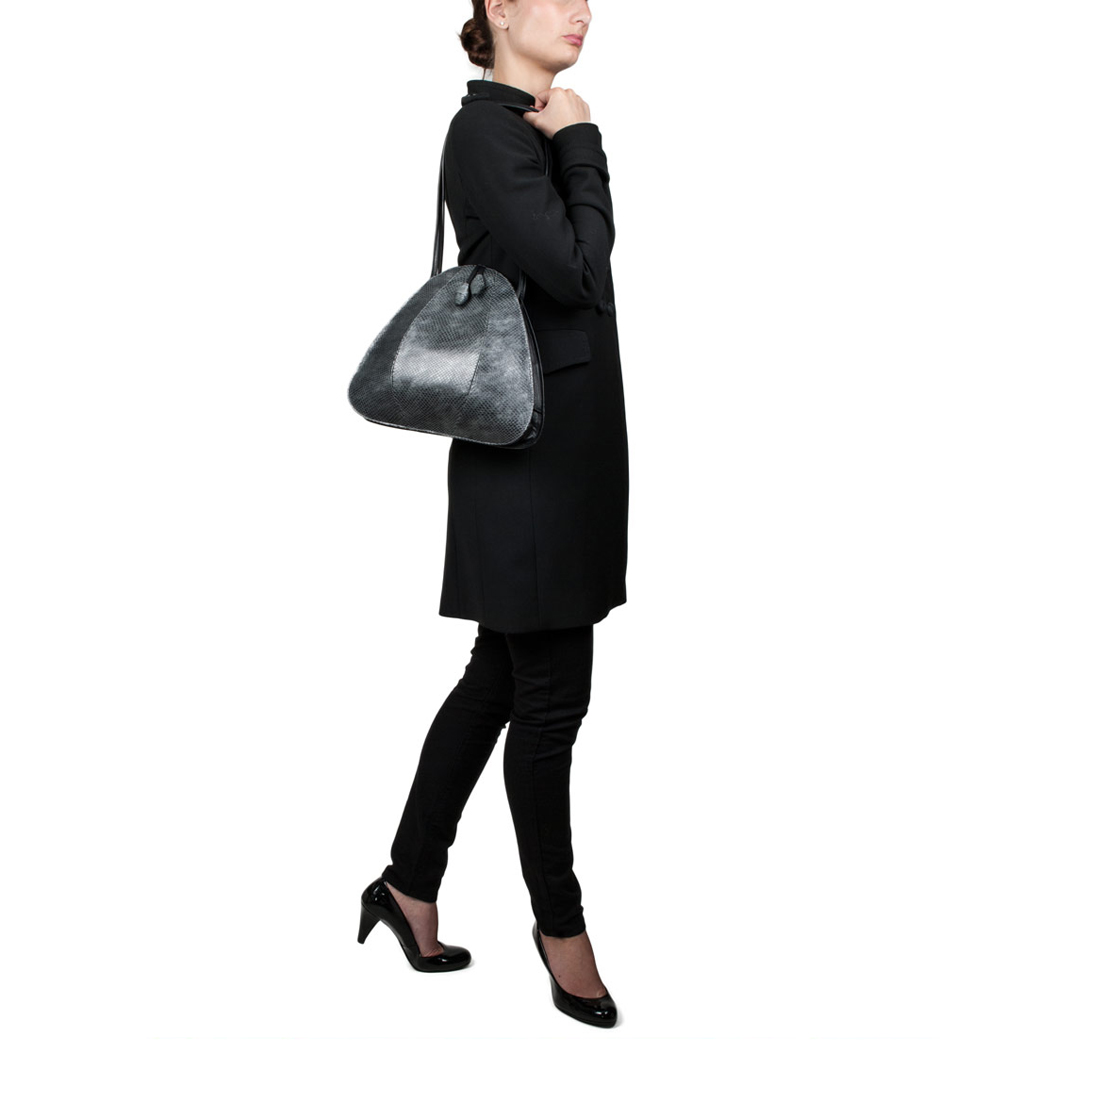 Petal Anthracite Pearl Shoulder Bag